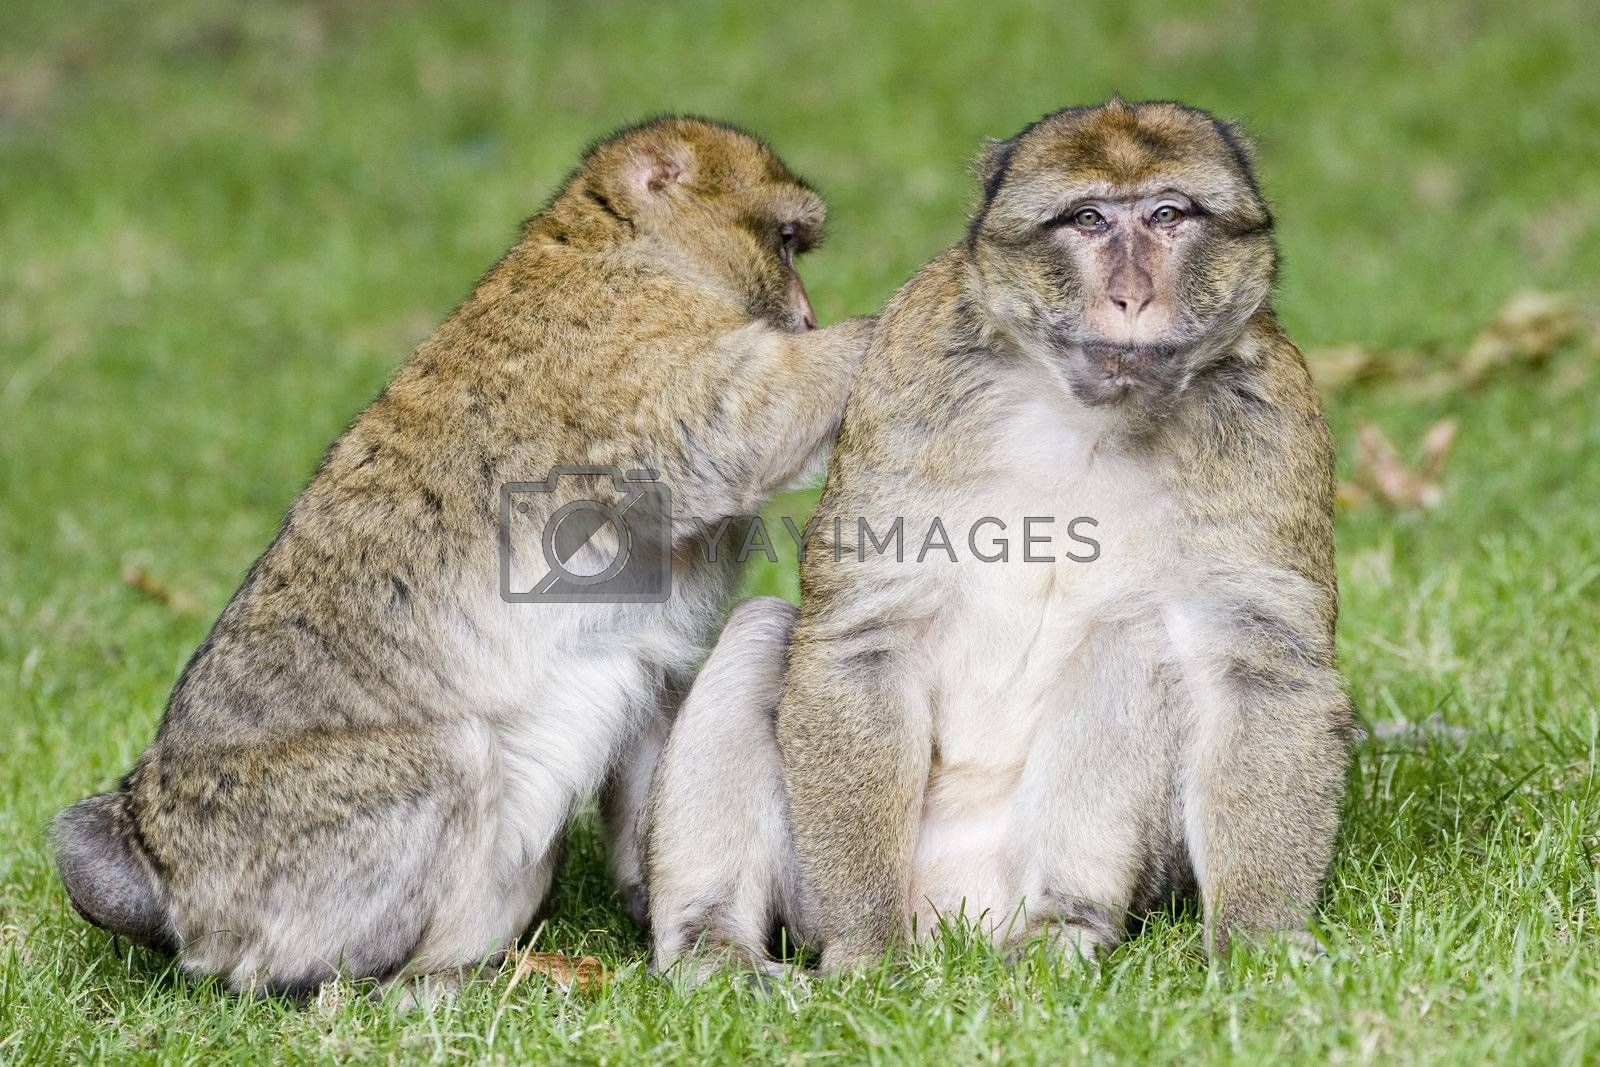 Barbary ape lousing another ape in green grass